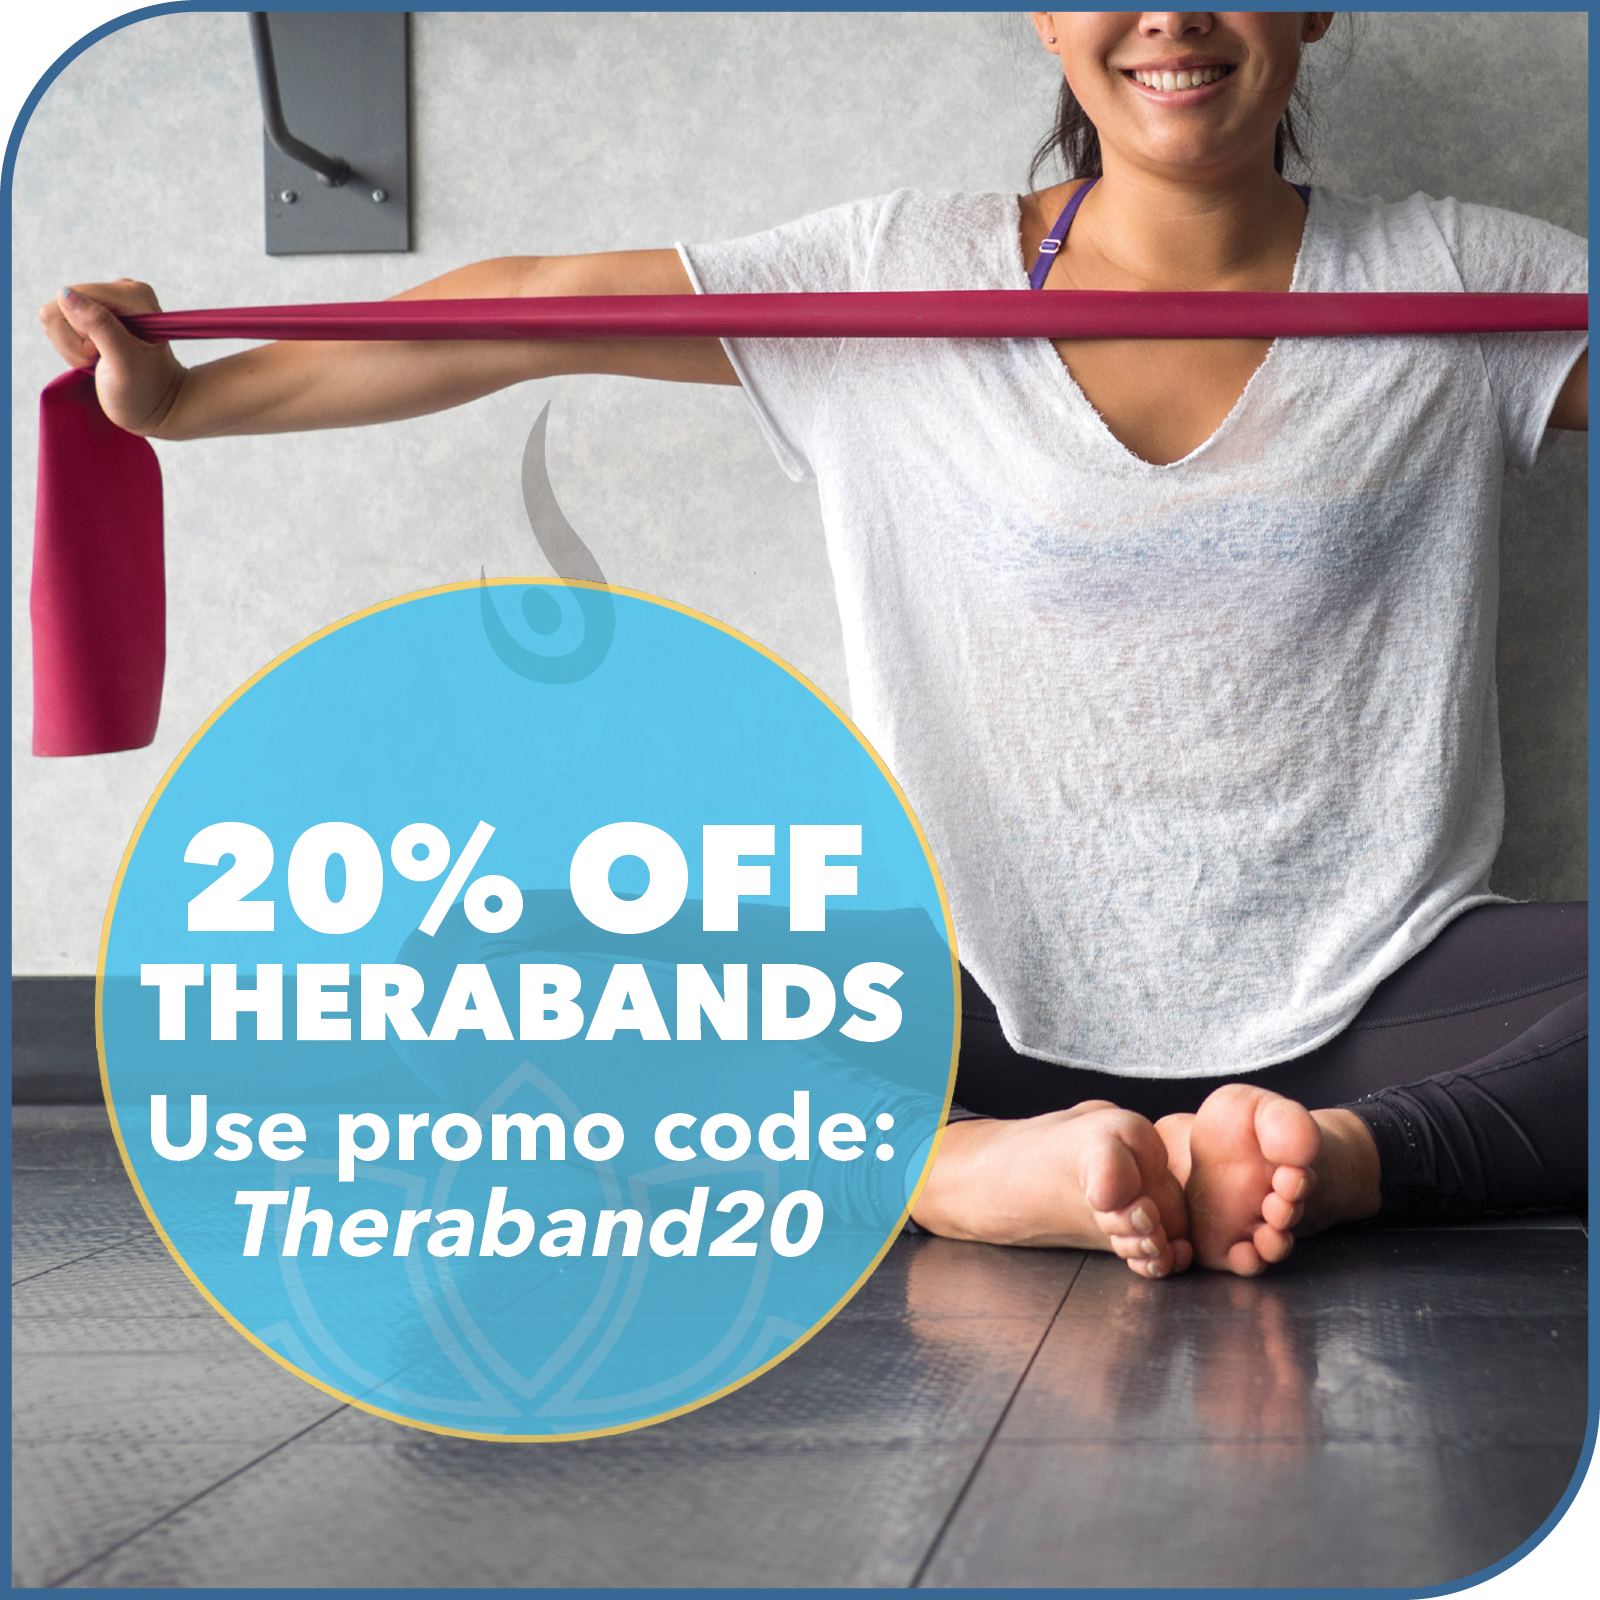 Yoga North September Special 20% off Therabands